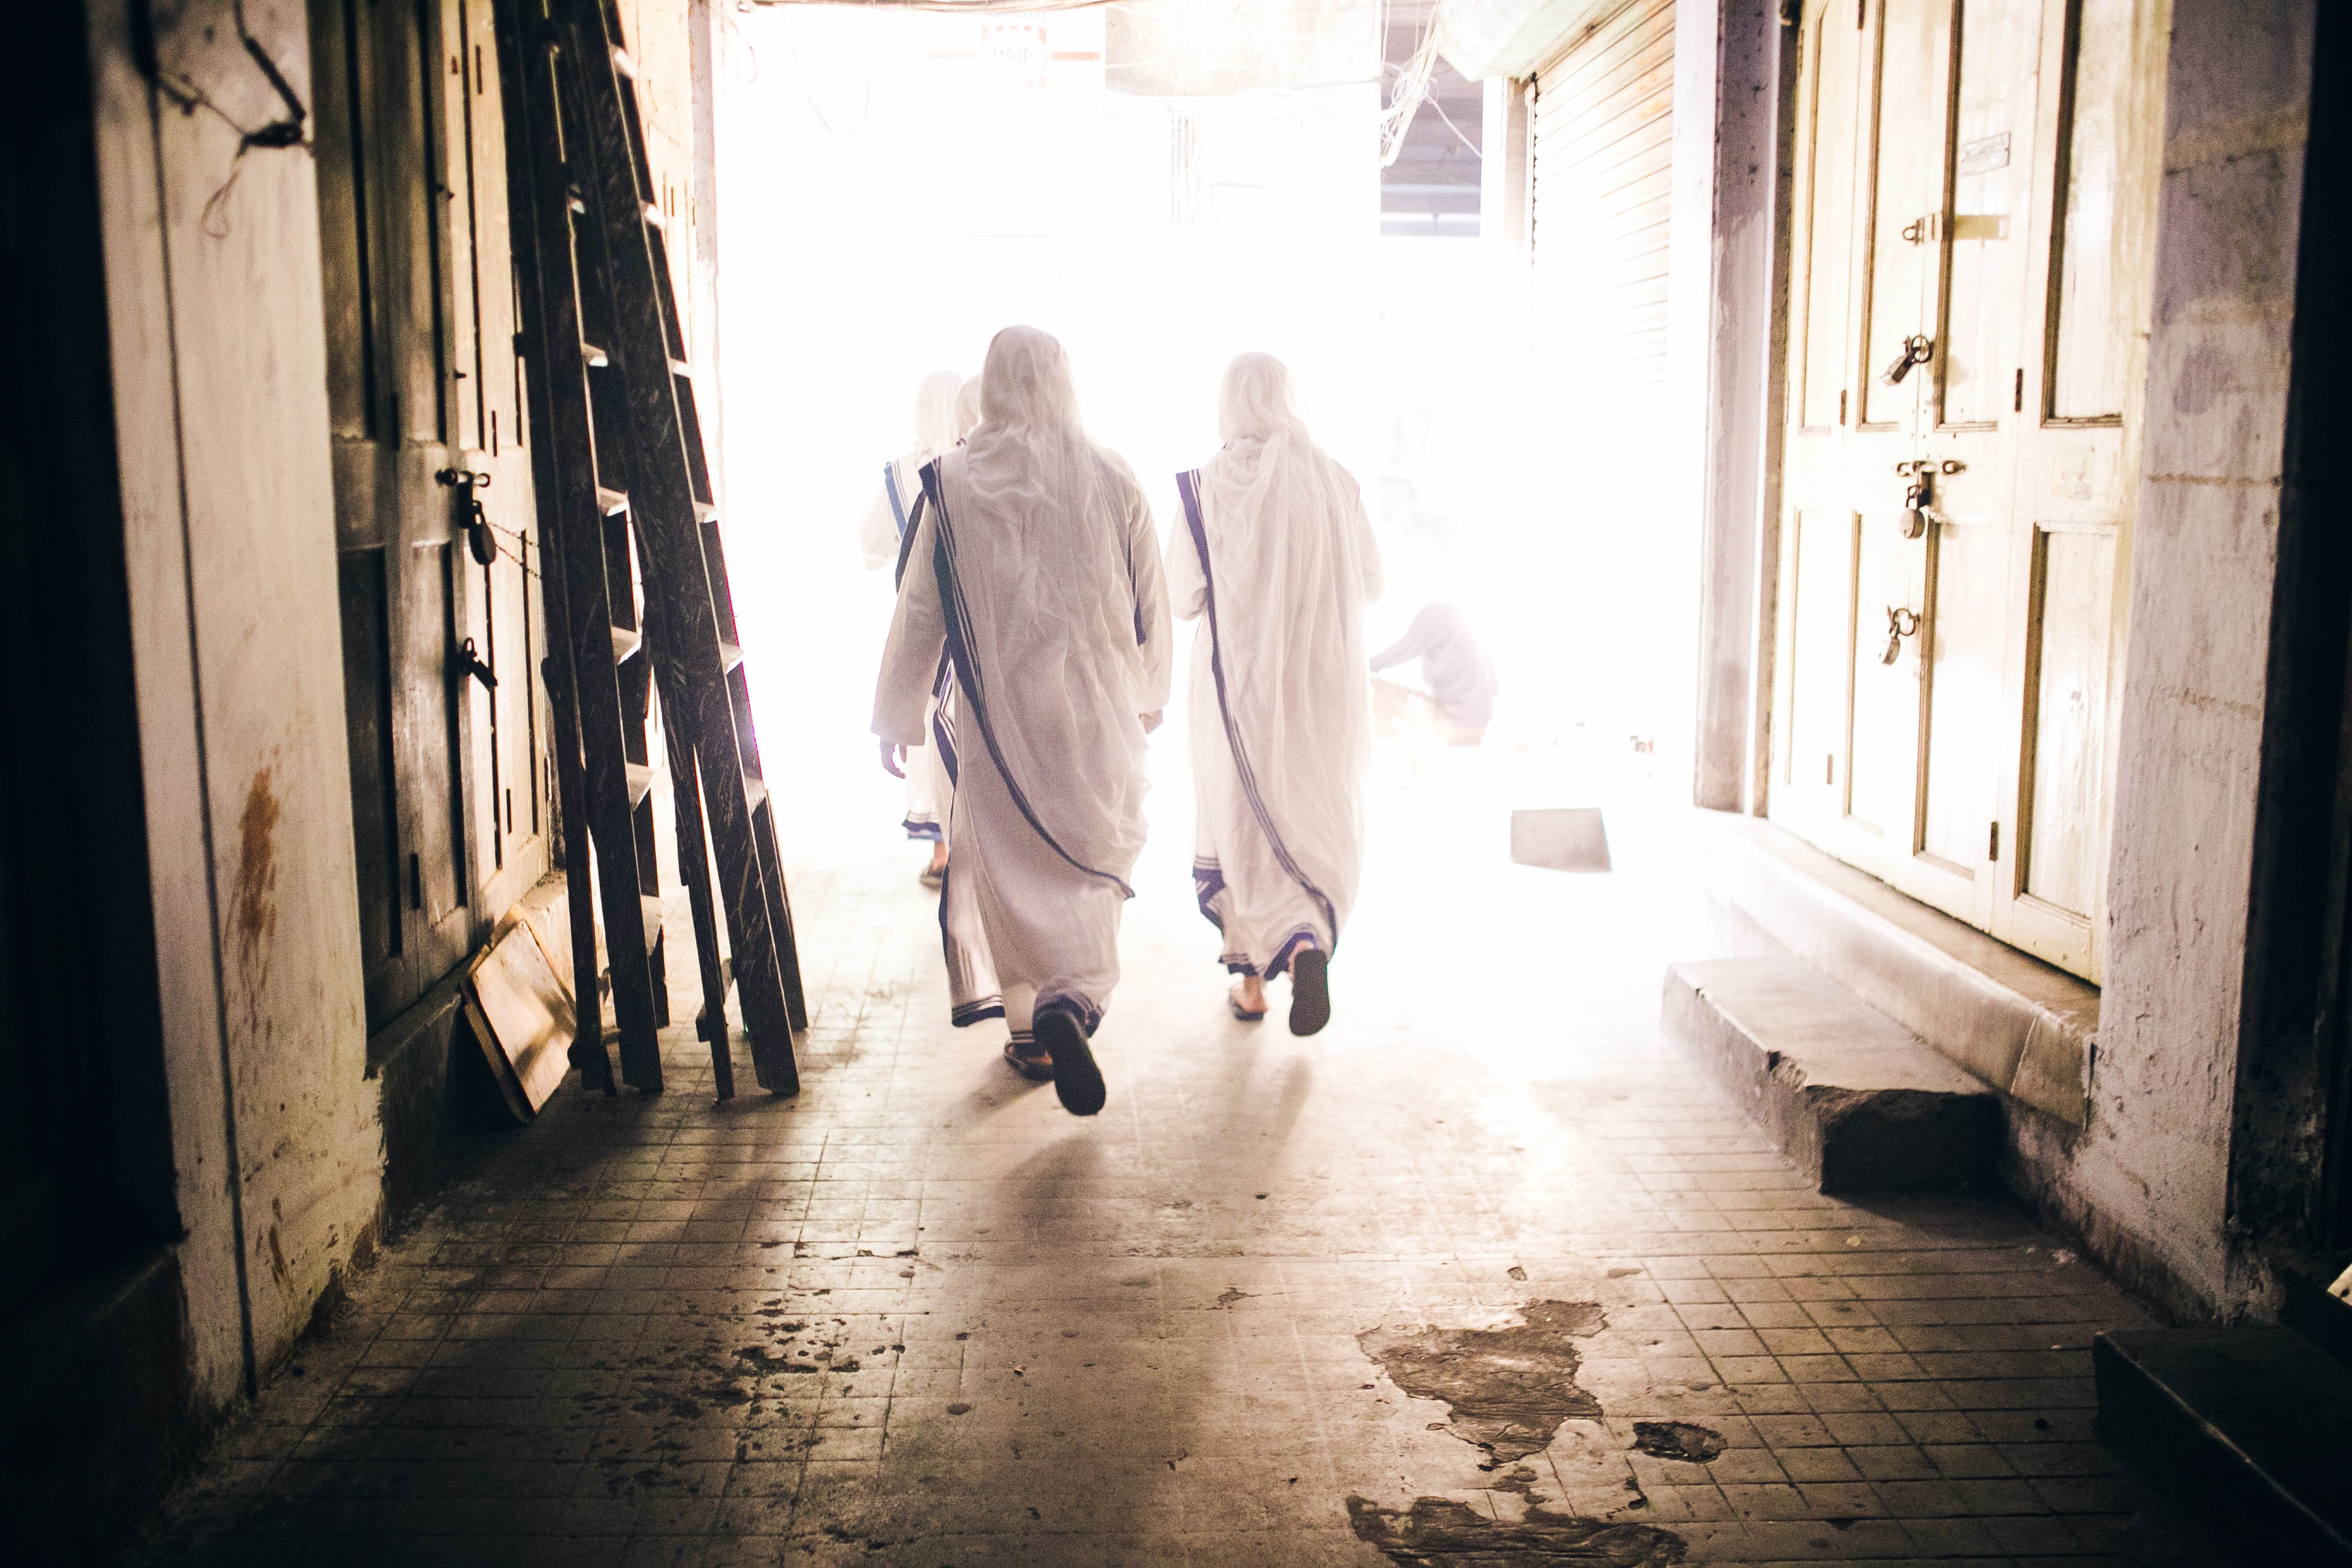 Two men dressed in white walking on a bright street.